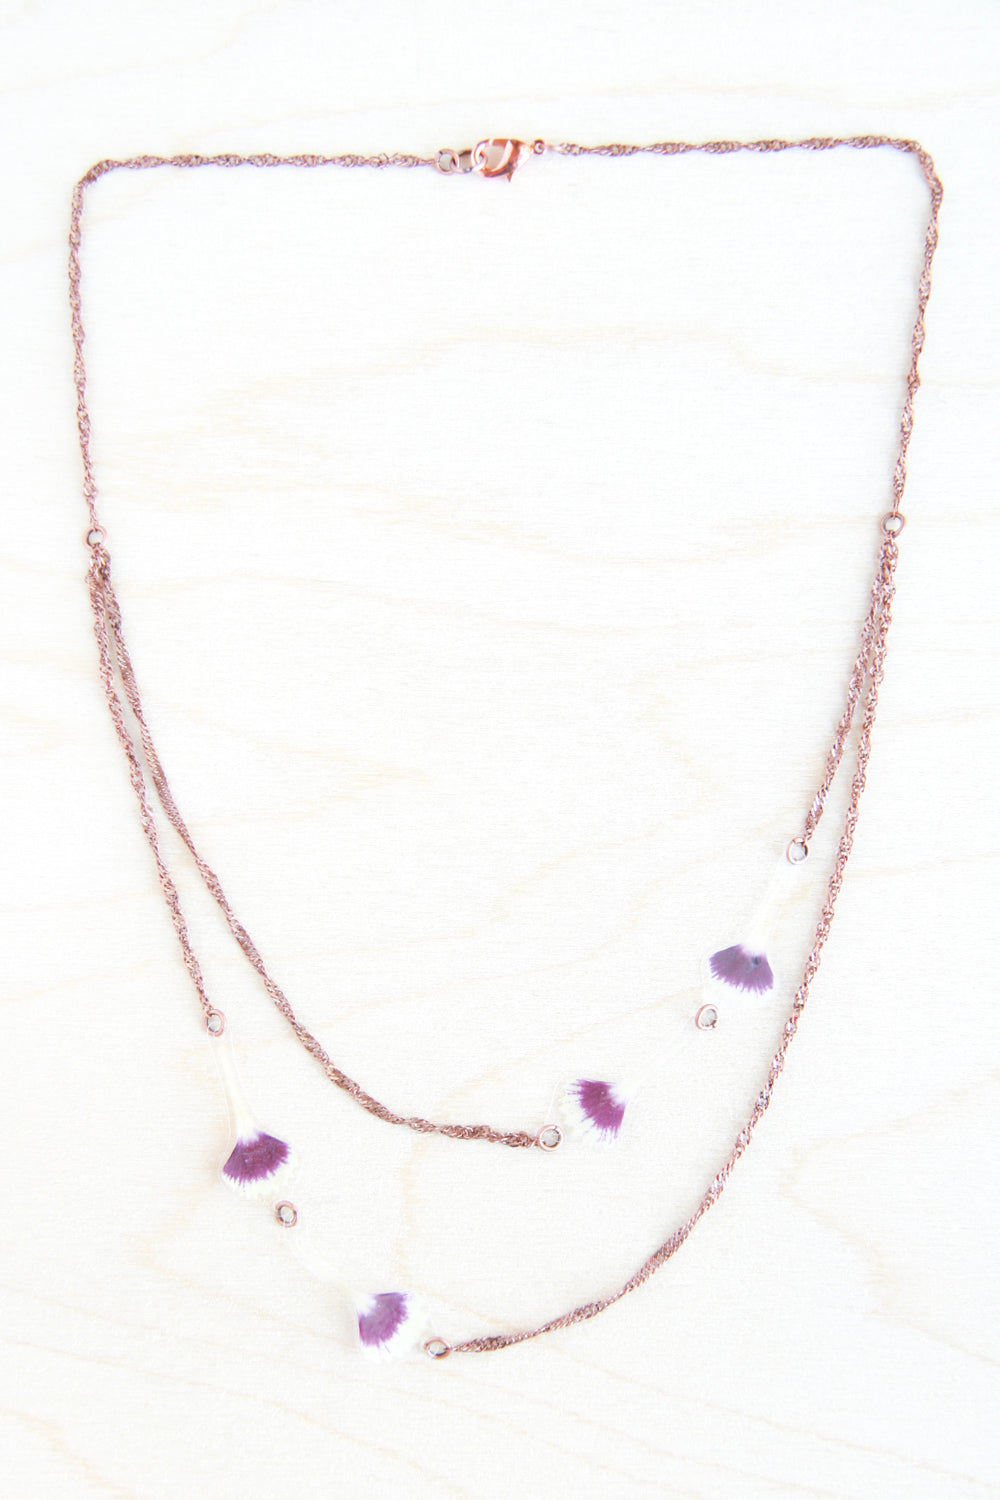 Burgundy Sweet William Pressed Petal Necklace